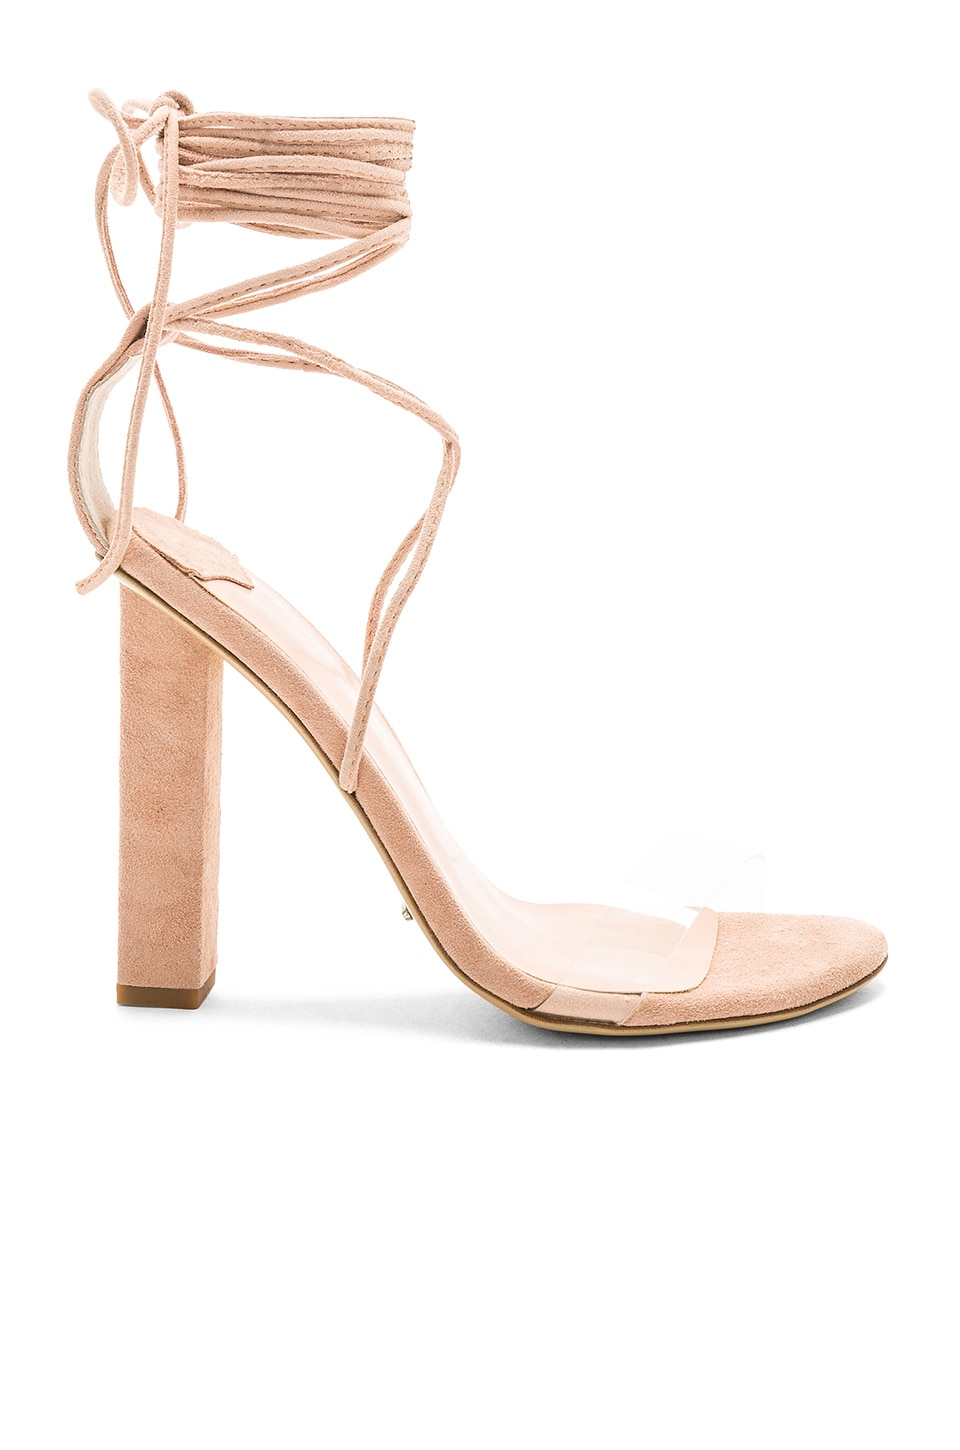 Tony Bianco Kendall Heel in Clear Vinalyte & Blush Kid Suede